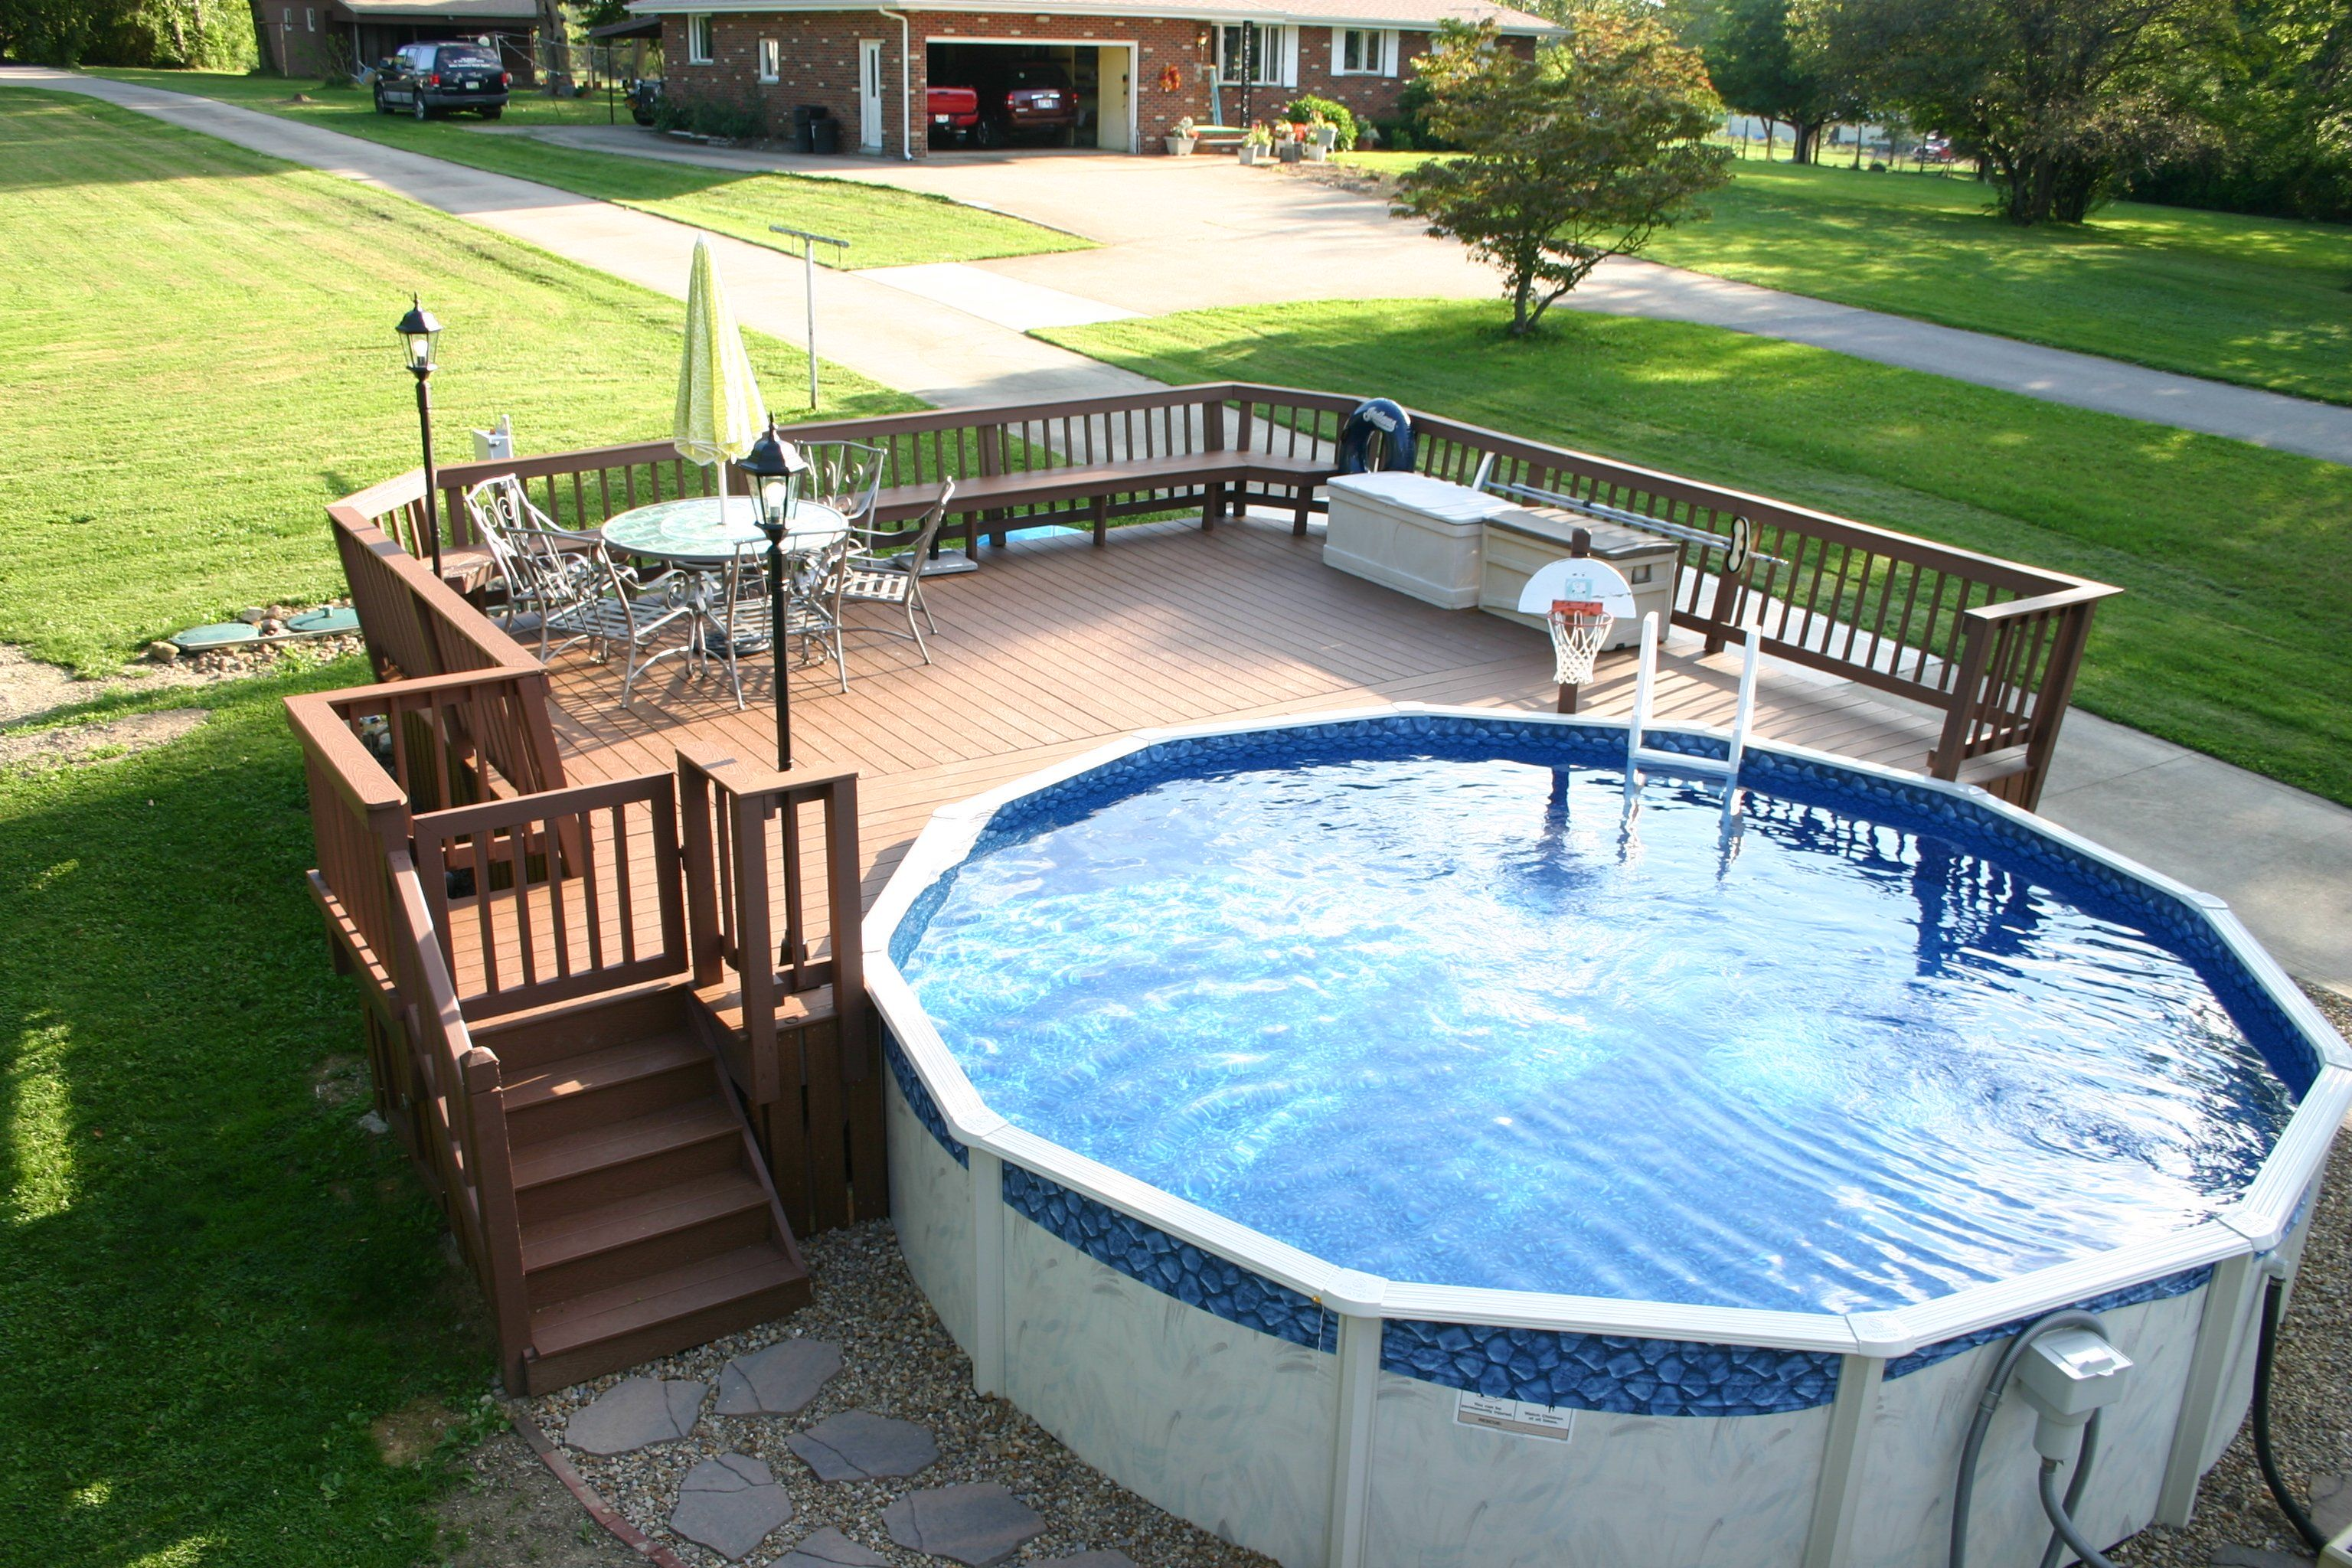 Swimming Pools Backyard Above Ground Pool, How To Install An Above Ground Oval Pool